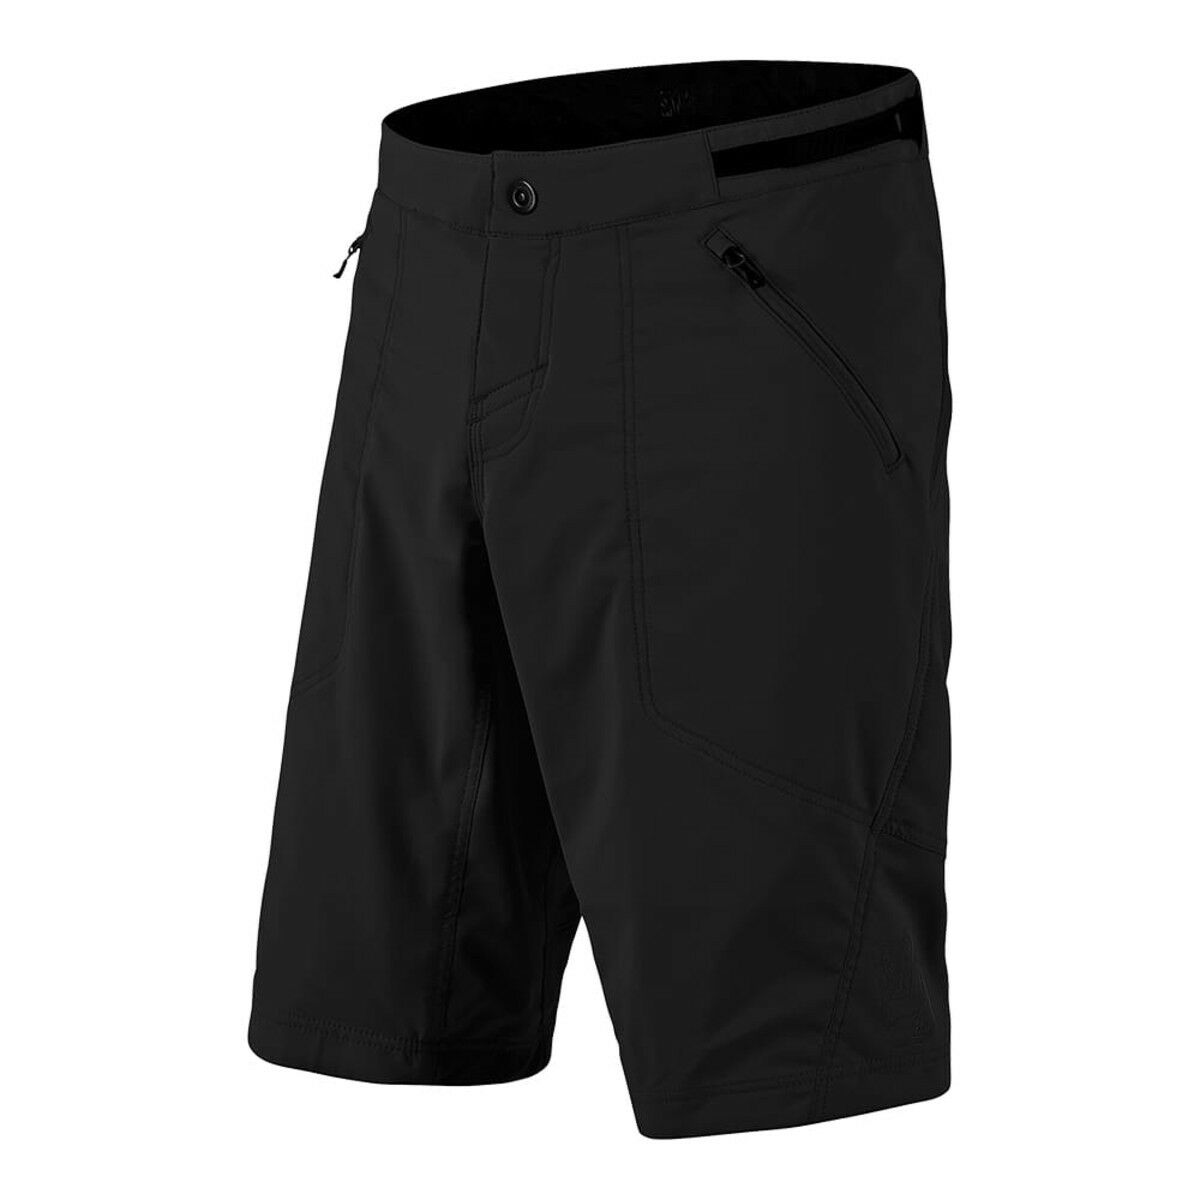 Troy Lee Designs Skyline Mountain Bike Pantaloncini Skyline Designs Corti ; Nero 34 c48b21